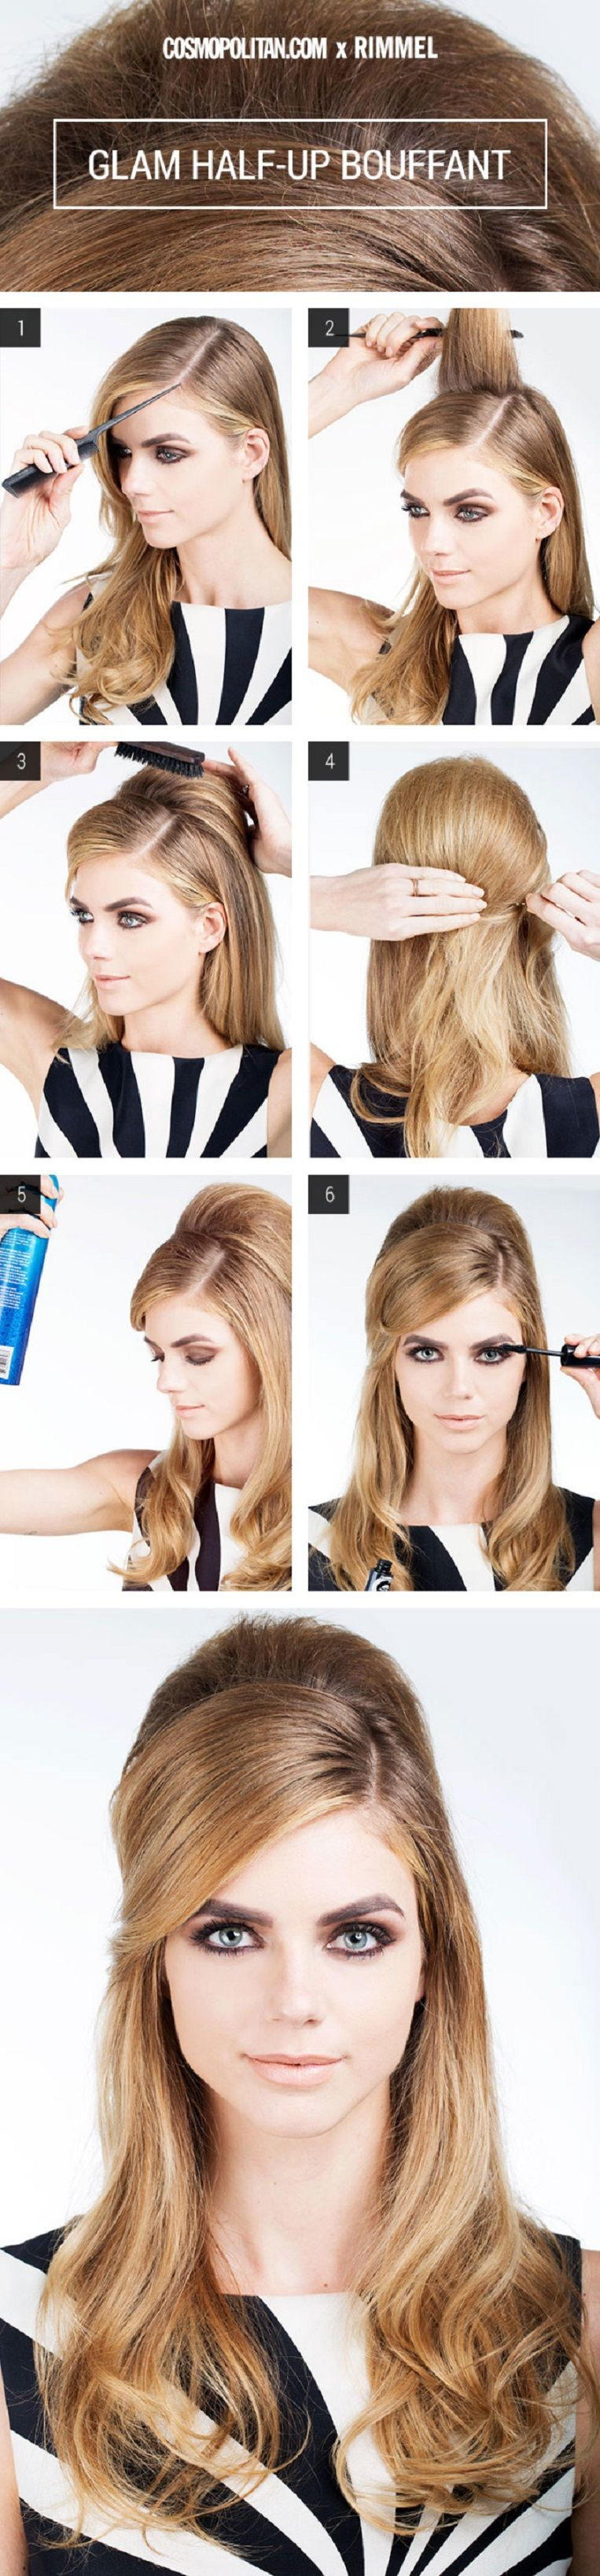 12 Hairstyle Tutorials For Lazy Girls Gleamitup Bouffant Hair Hair Romance Long Hair Styles